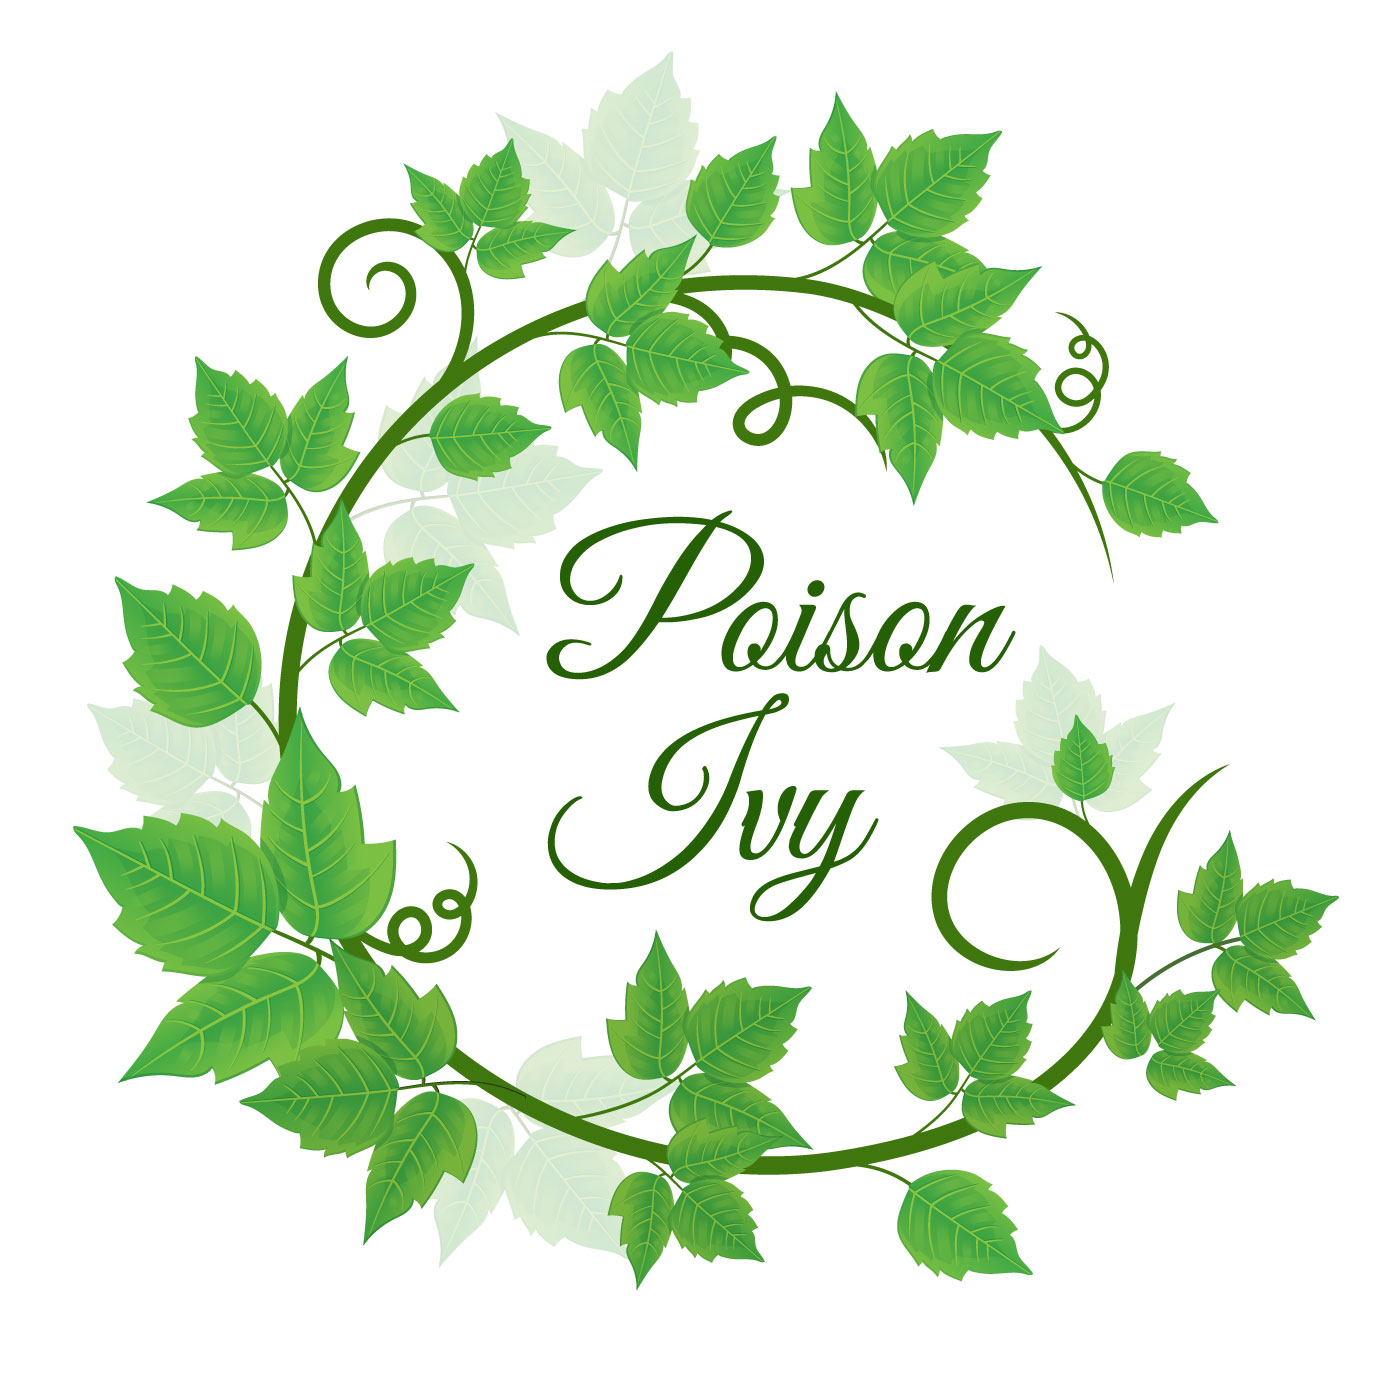 Green Poison Ivy Leaf Wreath Background Download Free